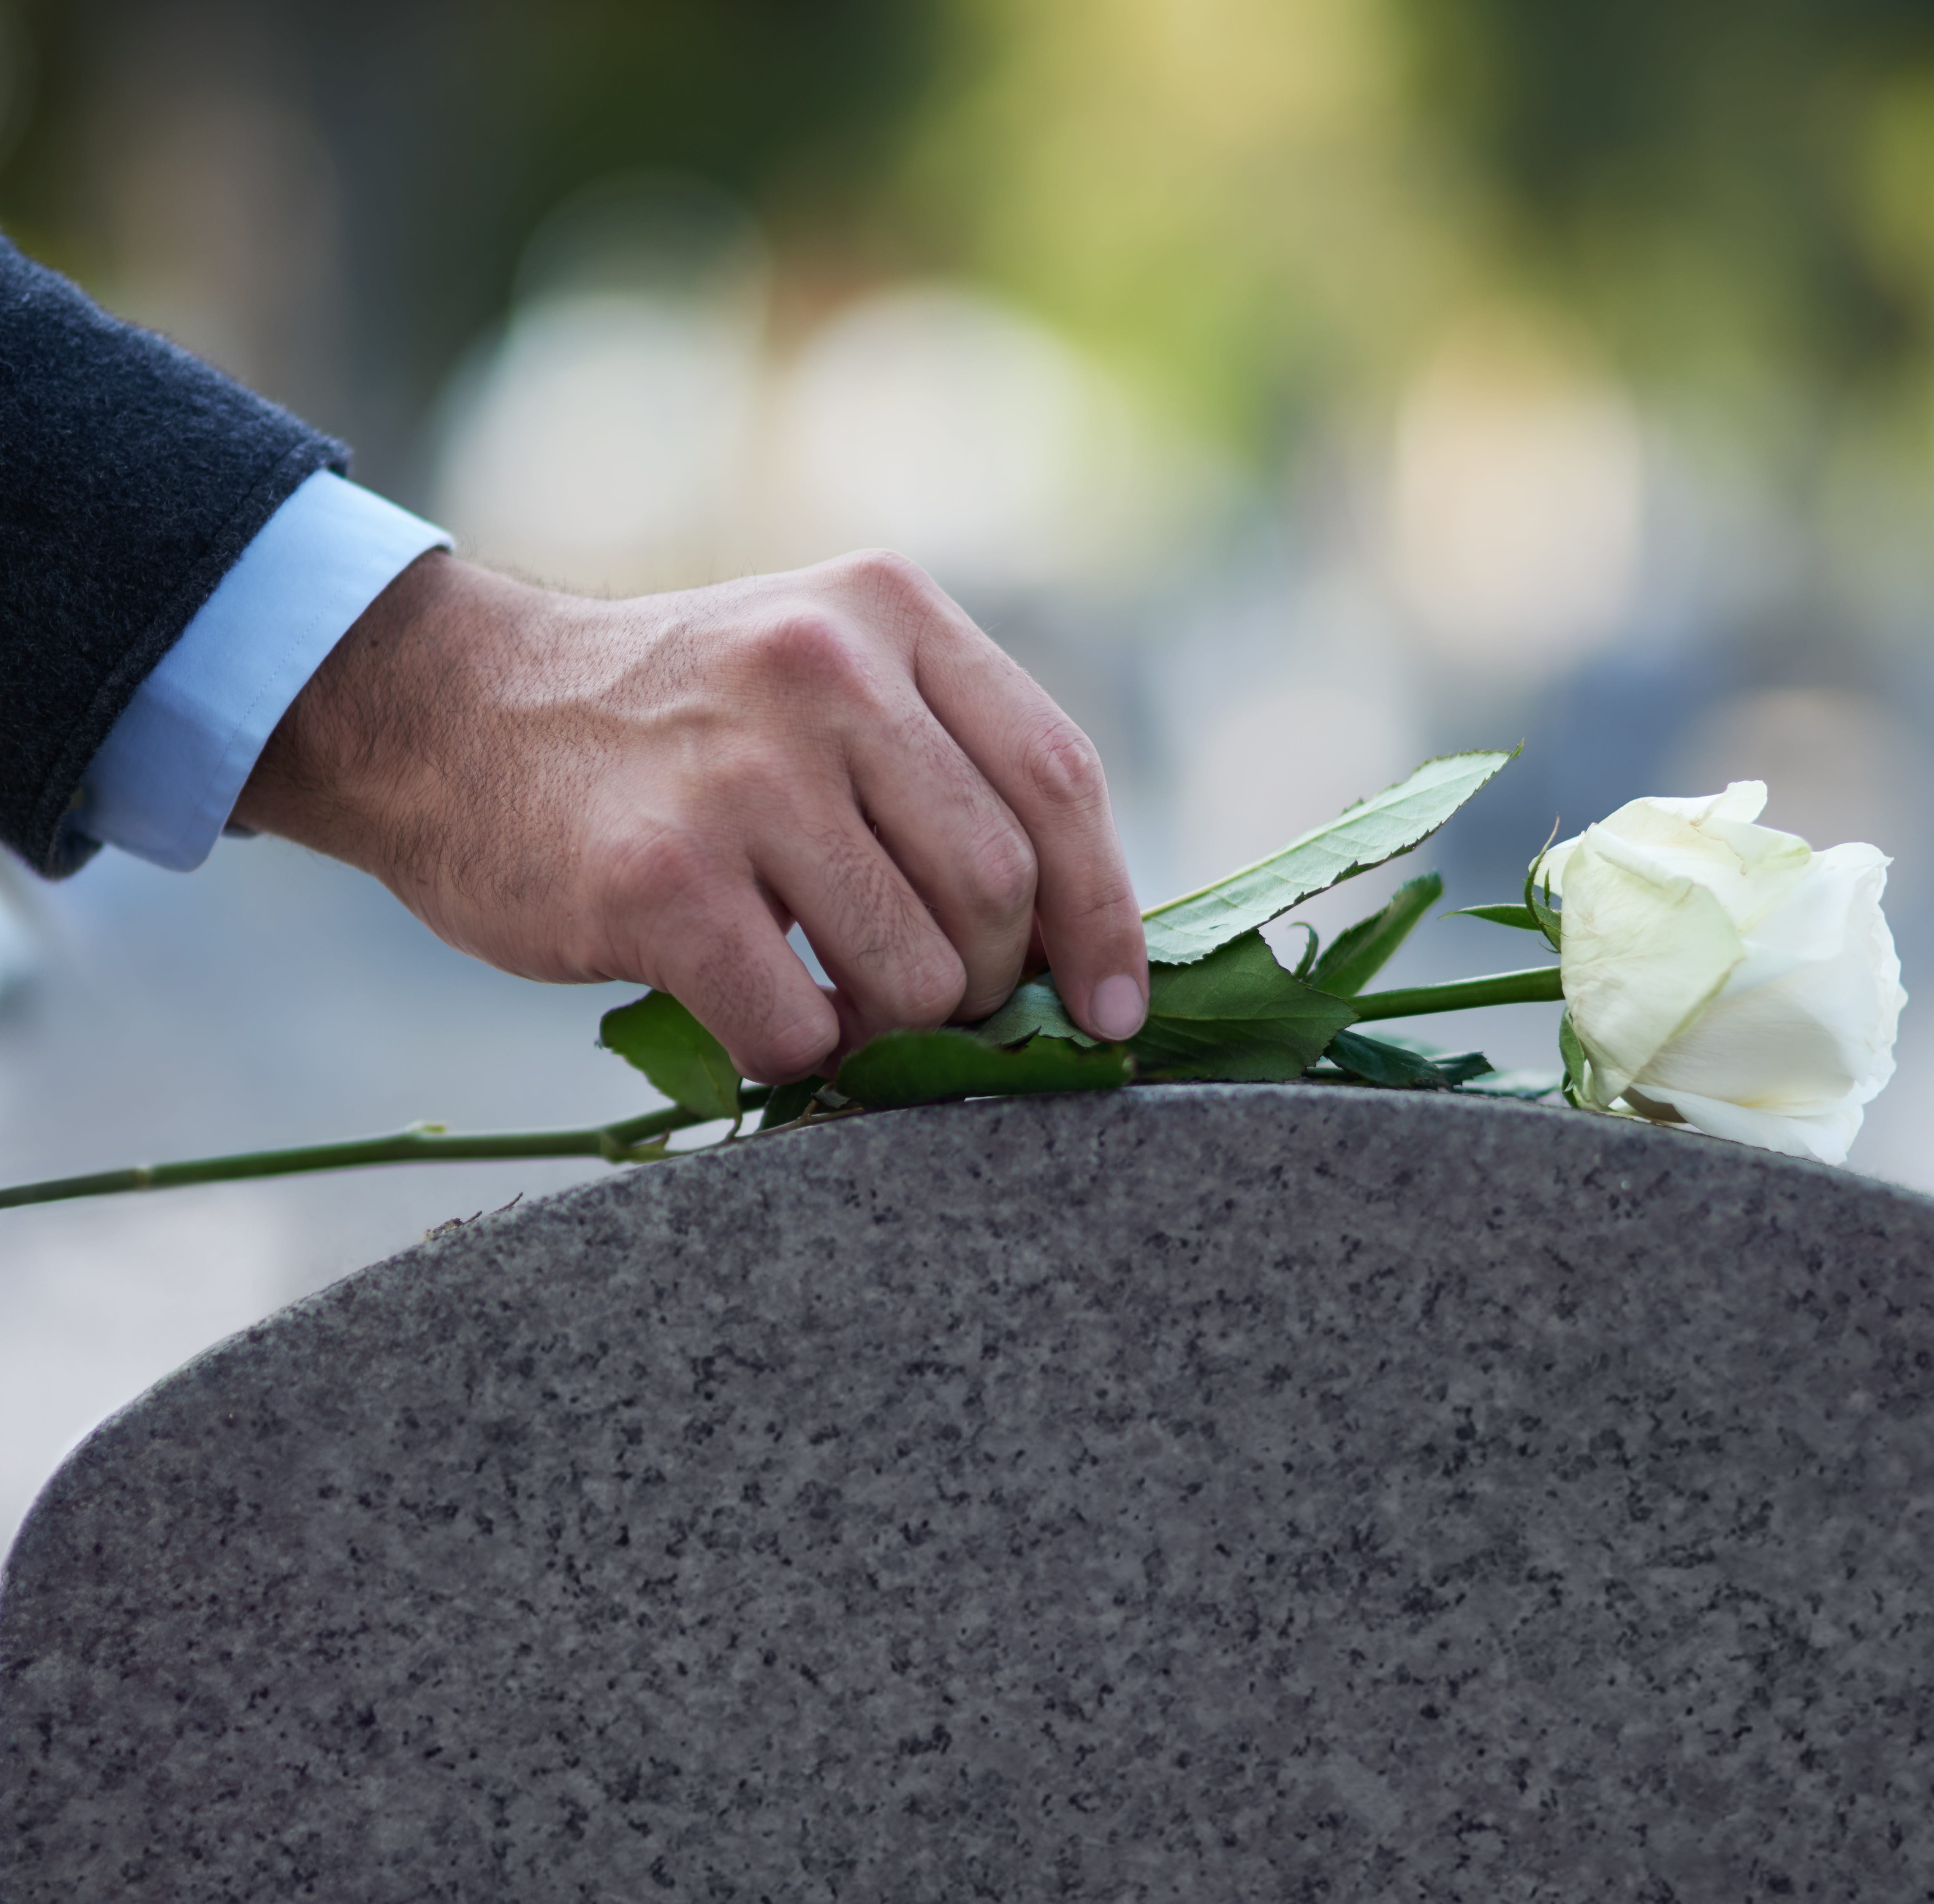 Do NY workers need 10 weeks of partially paid leave to grieve after death of loved one?